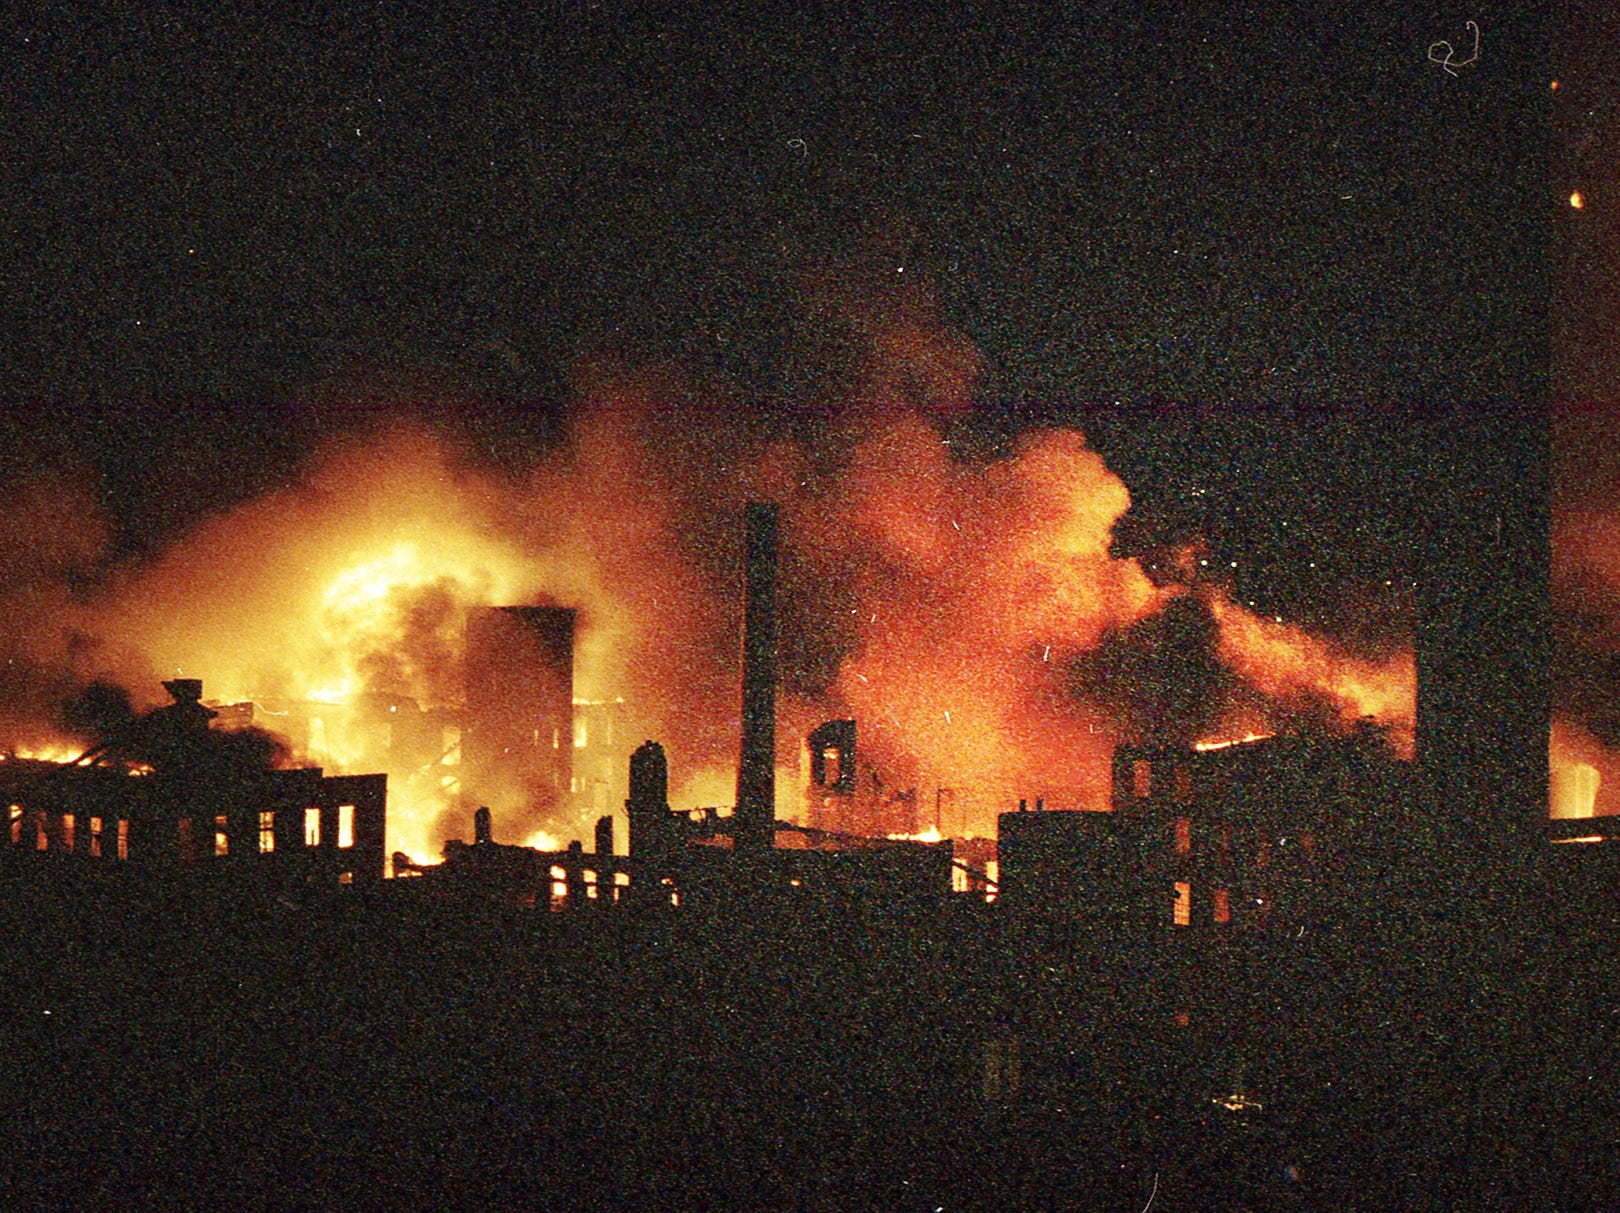 A wide shot shows the entire Thonet complex in advanced stages of the fire. A fire began at the former Thonet Furniture plant at 491 East Princess Street in York on December 11, 1993. Eventually, the four alarm fire spread through the complex of buildings and several other properties.